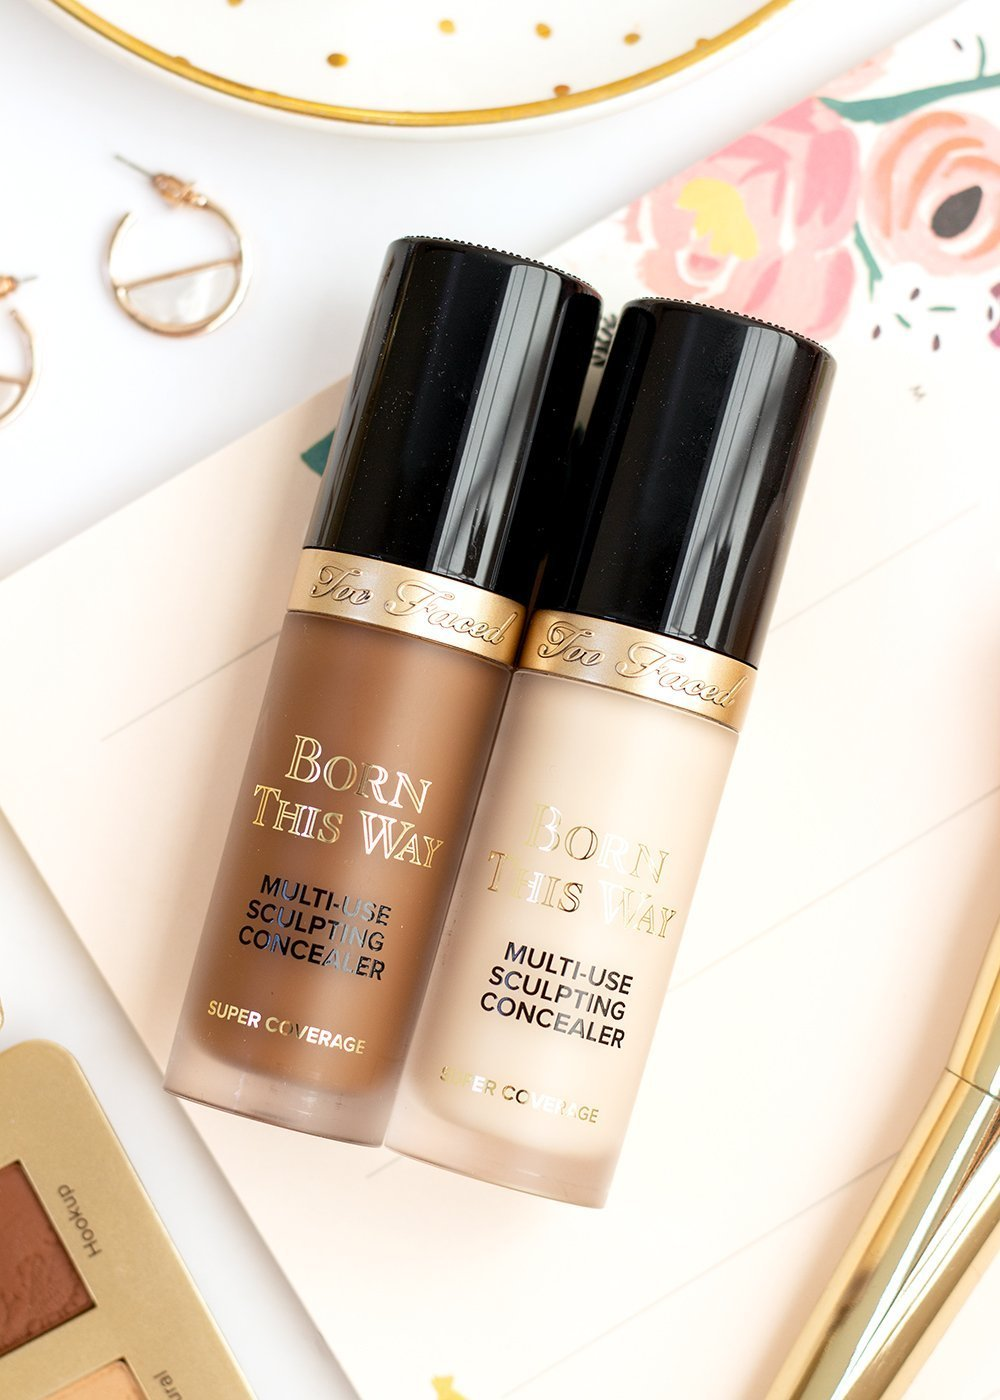 Too Faced Born This Way Multi-Use Sculpting Concealer